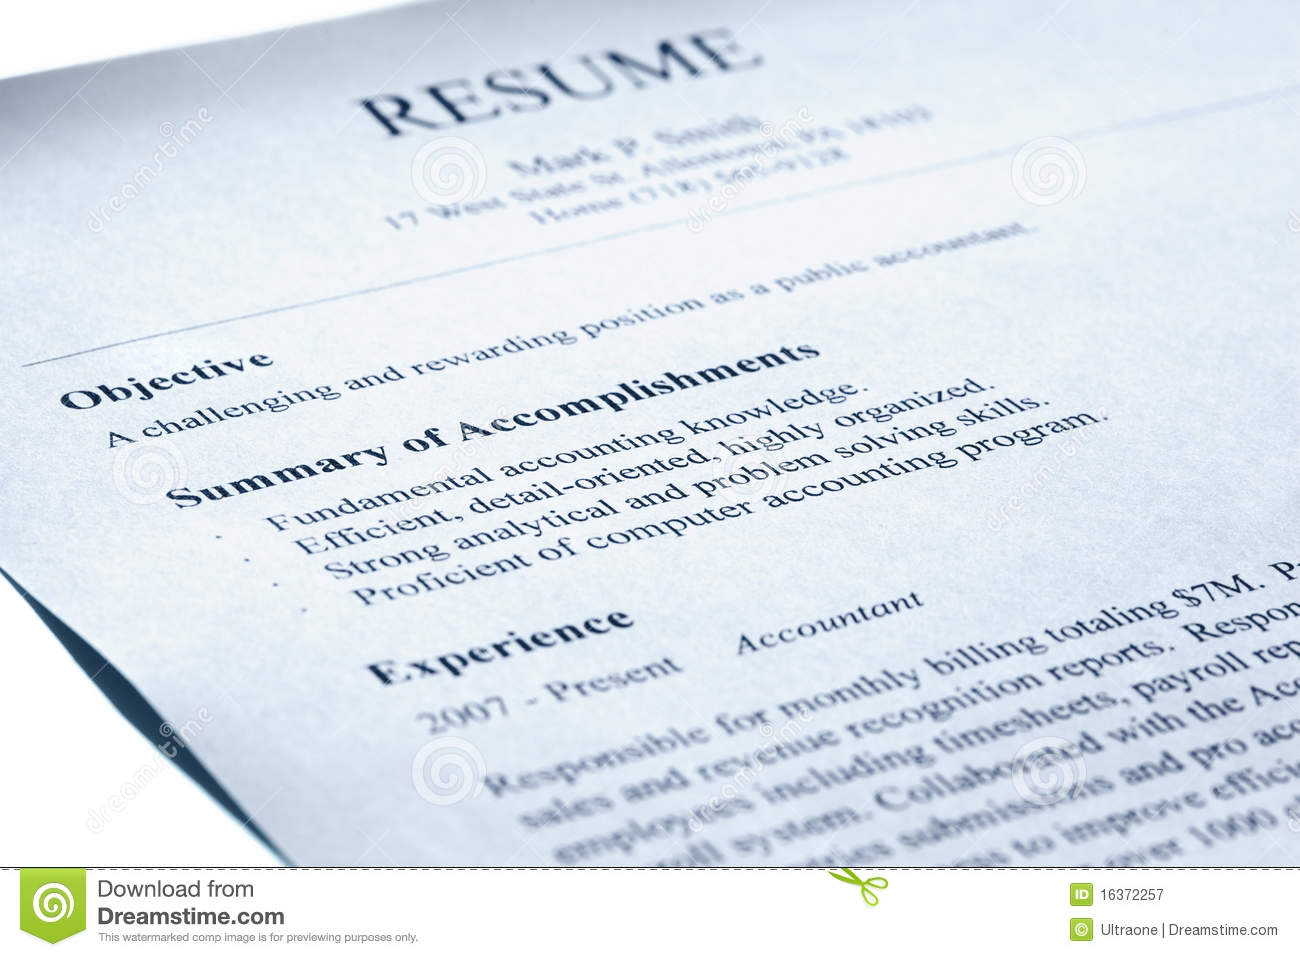 account manager resume  blue tint  royalty free stock